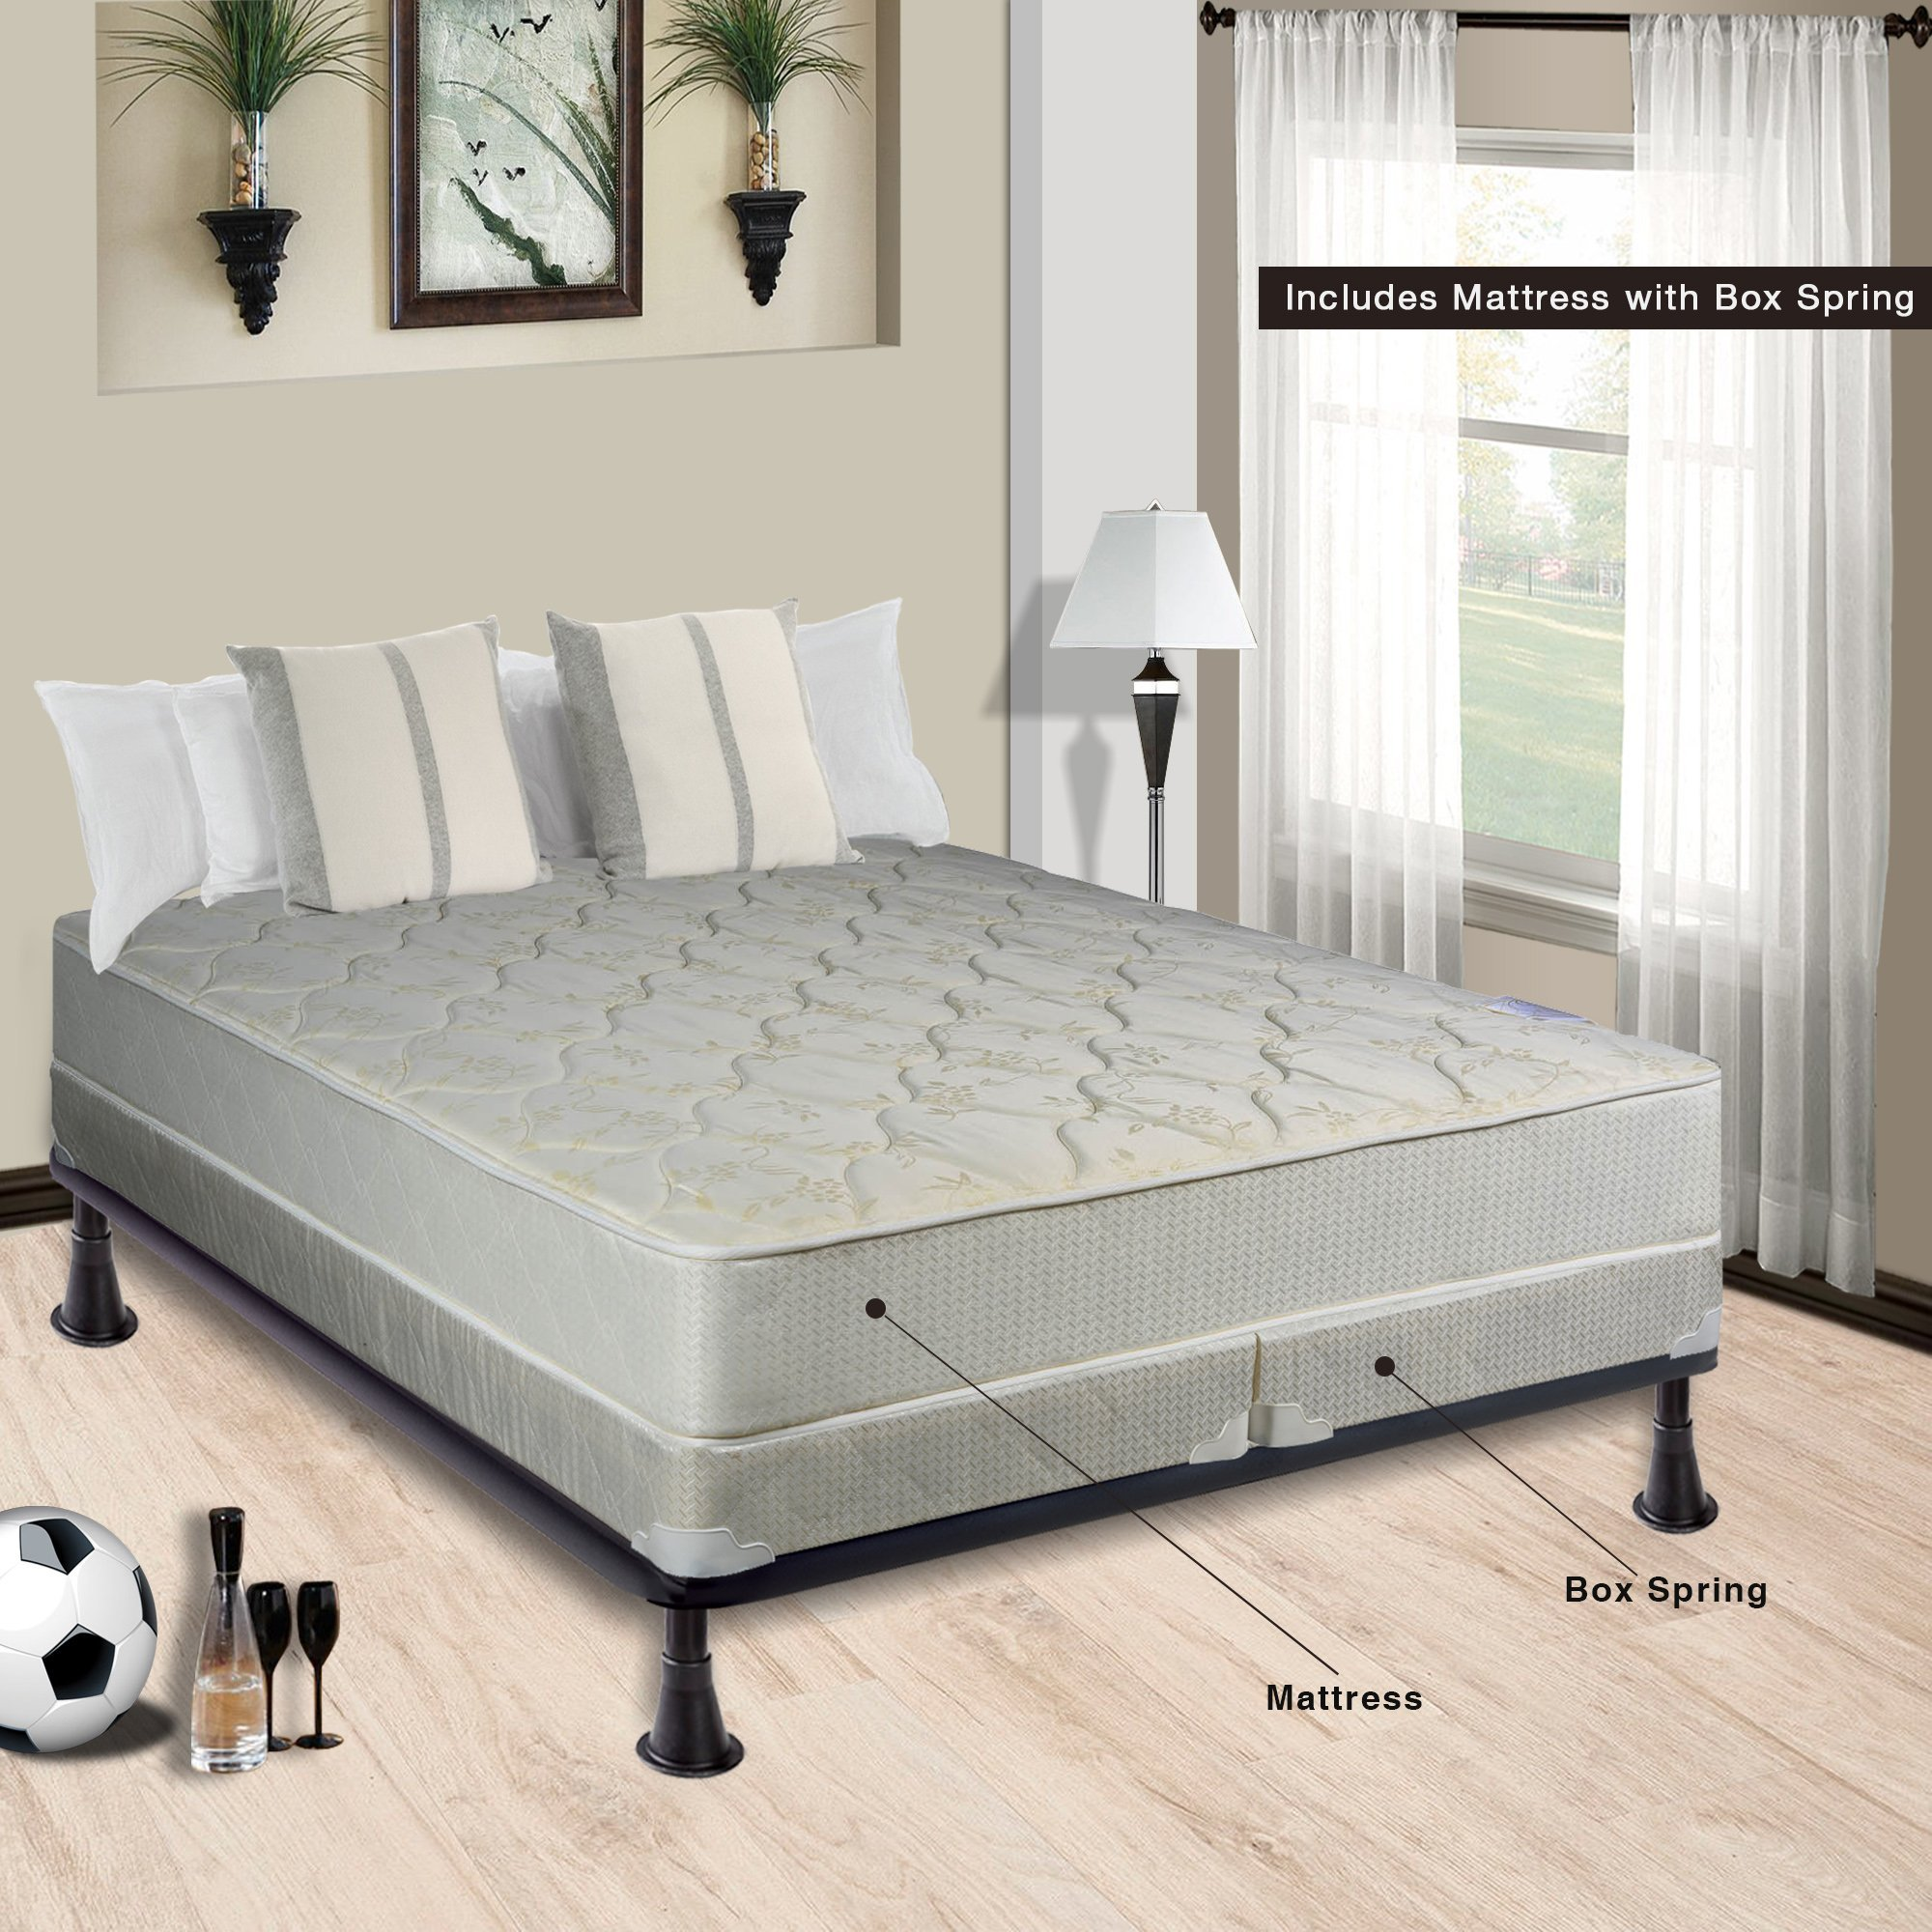 Continental Sleep, 9 Gentle Firm Tight top Innerspring Mattress And 4-inch Split Wood Traditional Box Spring/Foundation Set, Good For The Back, No Assembly Required, Twin Size 74'' x 38'', Beige by Continental Sleep,